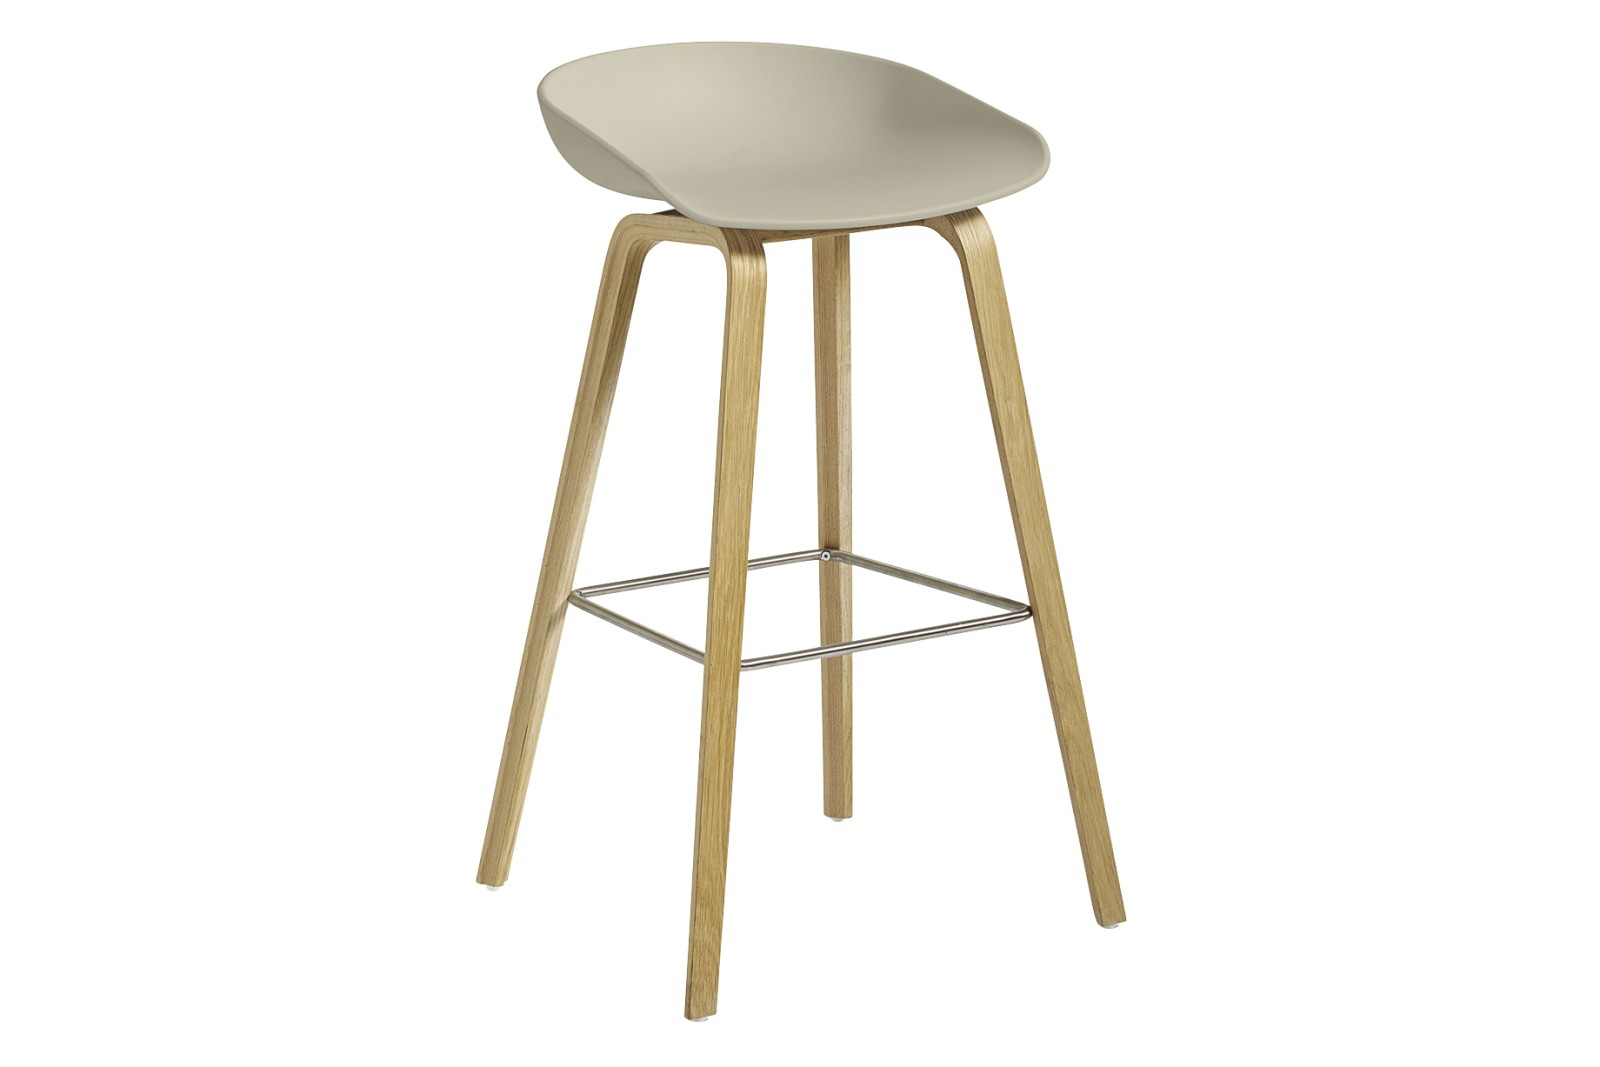 AAS 32 High Stool Plastic Pastel Green, Wood Clear Oak, Metal Stainless Steel